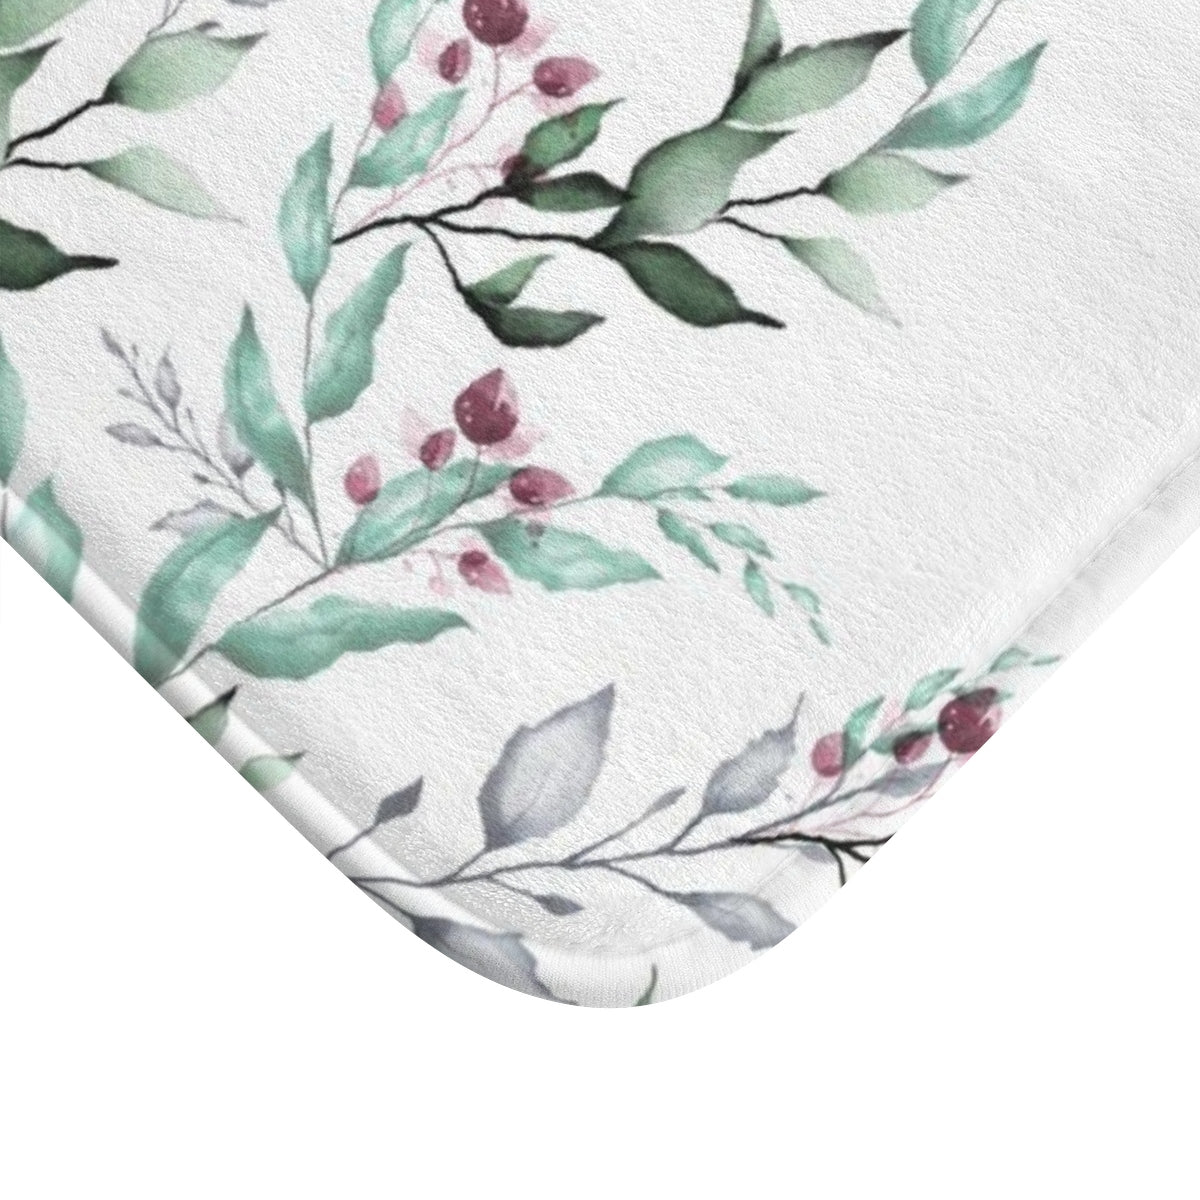 white bath rug with a print of green leaves and purple flowers - Liz Kapiloto Art & Design